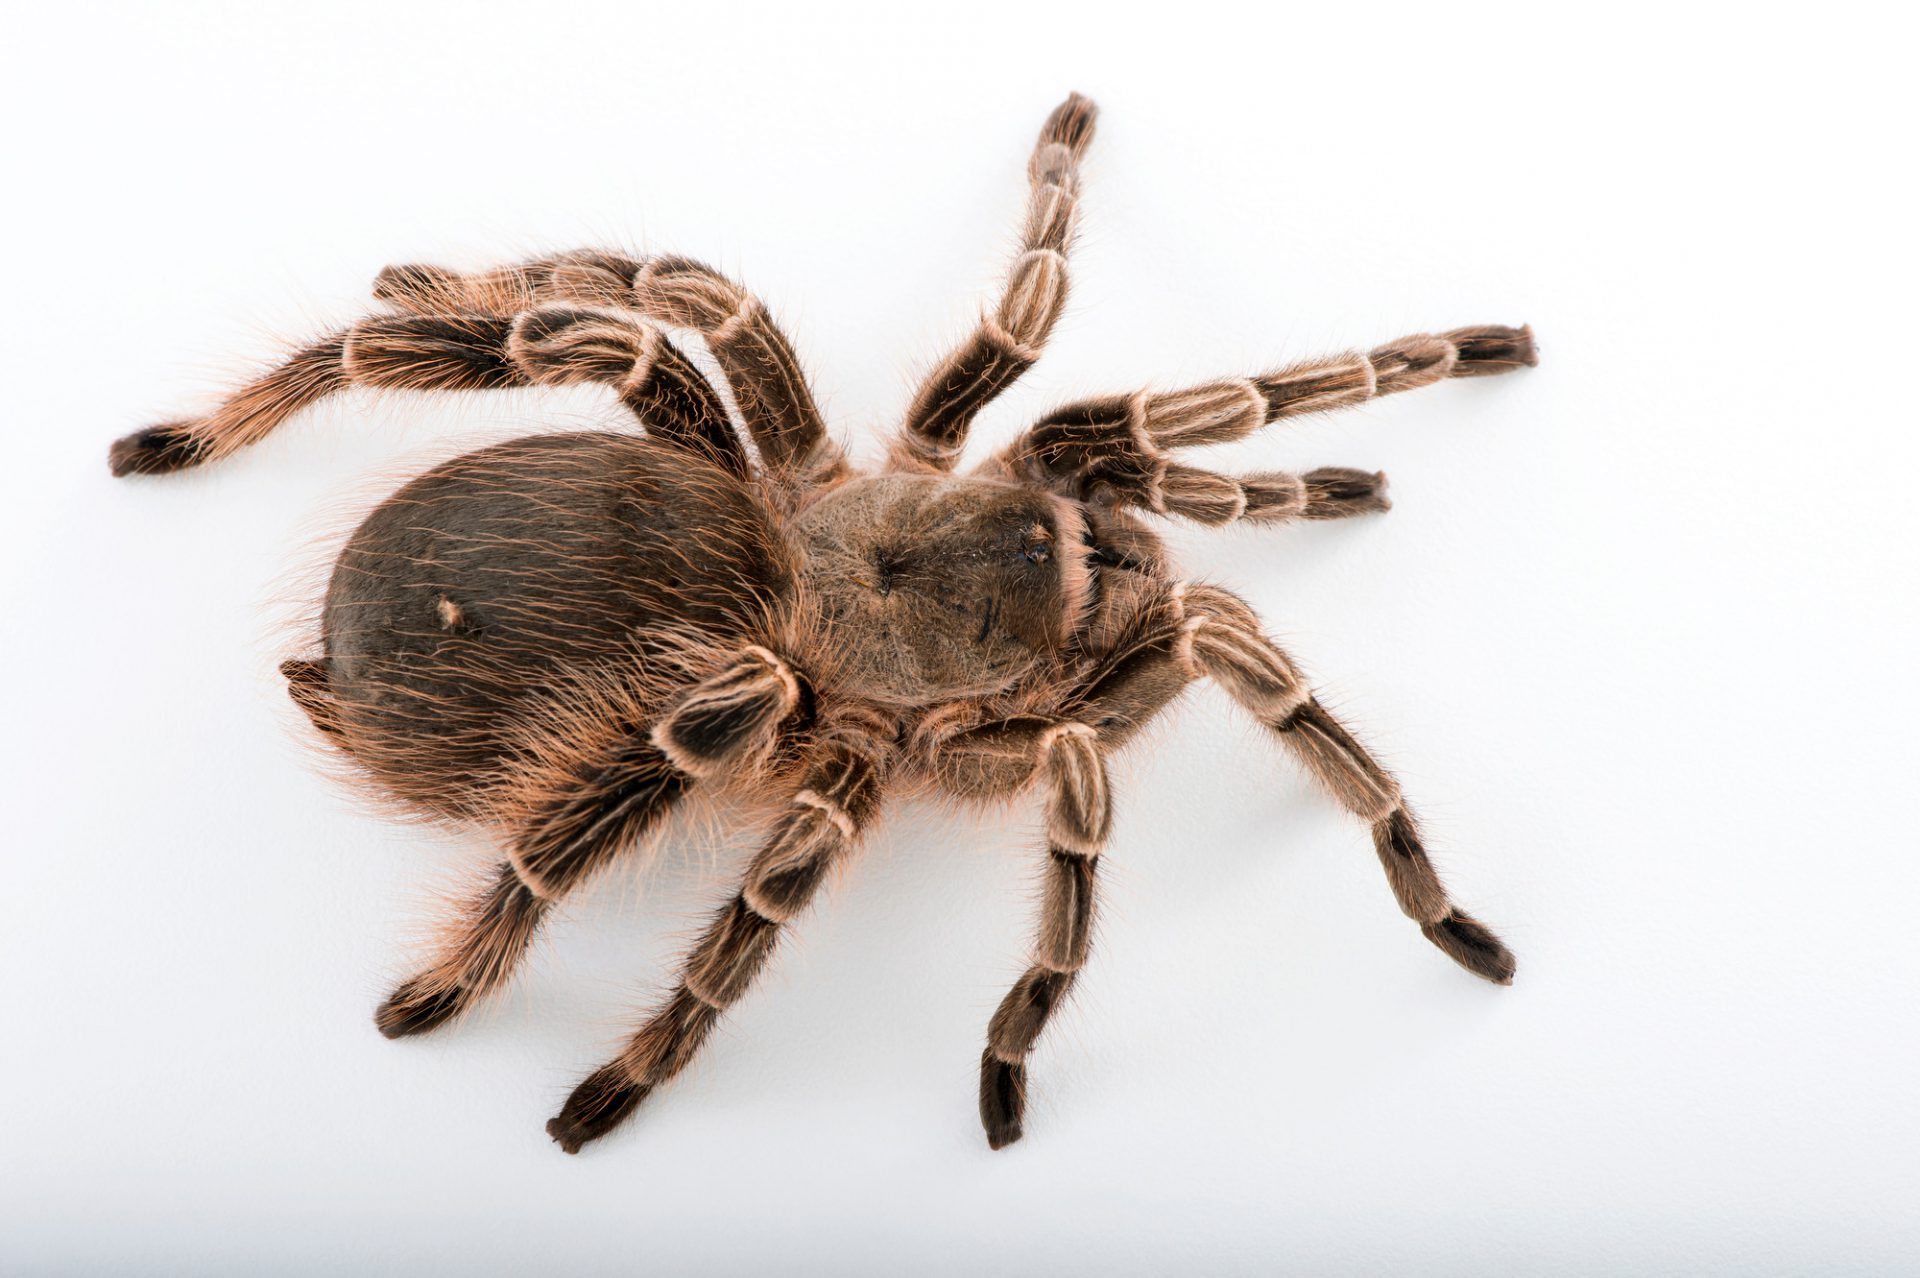 Picture of a pink zebra beauty tarantula (Eupalaestrus campestratus) at the St. Louis Zoo.